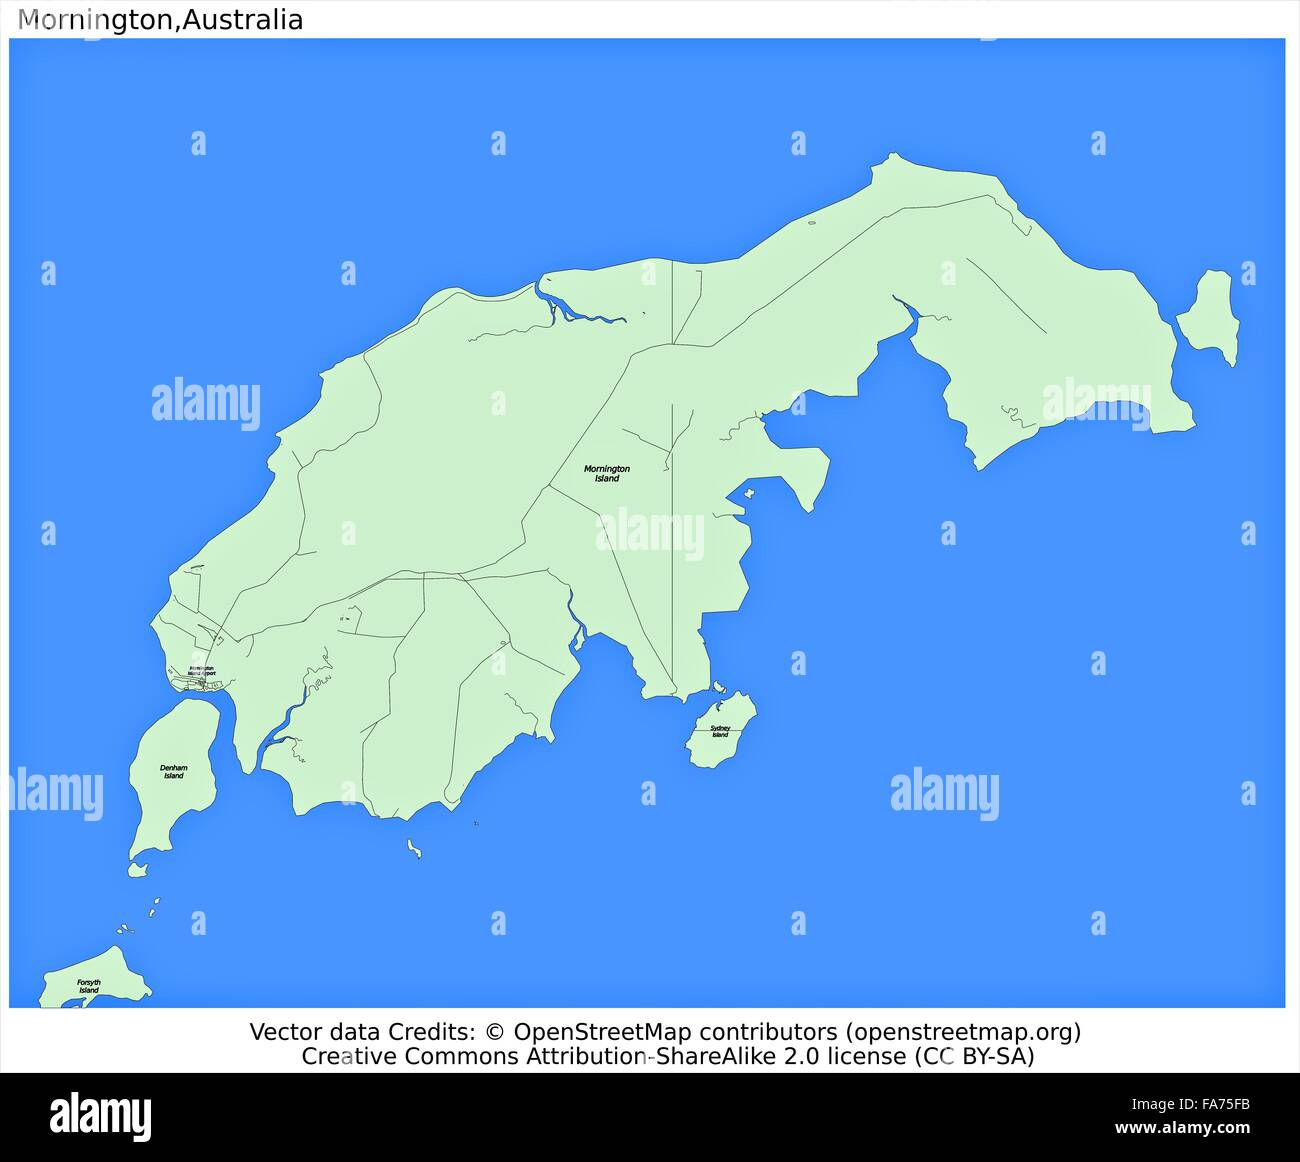 Australia Location Map.Mornington Australia Location Map Stock Photo 92356415 Alamy